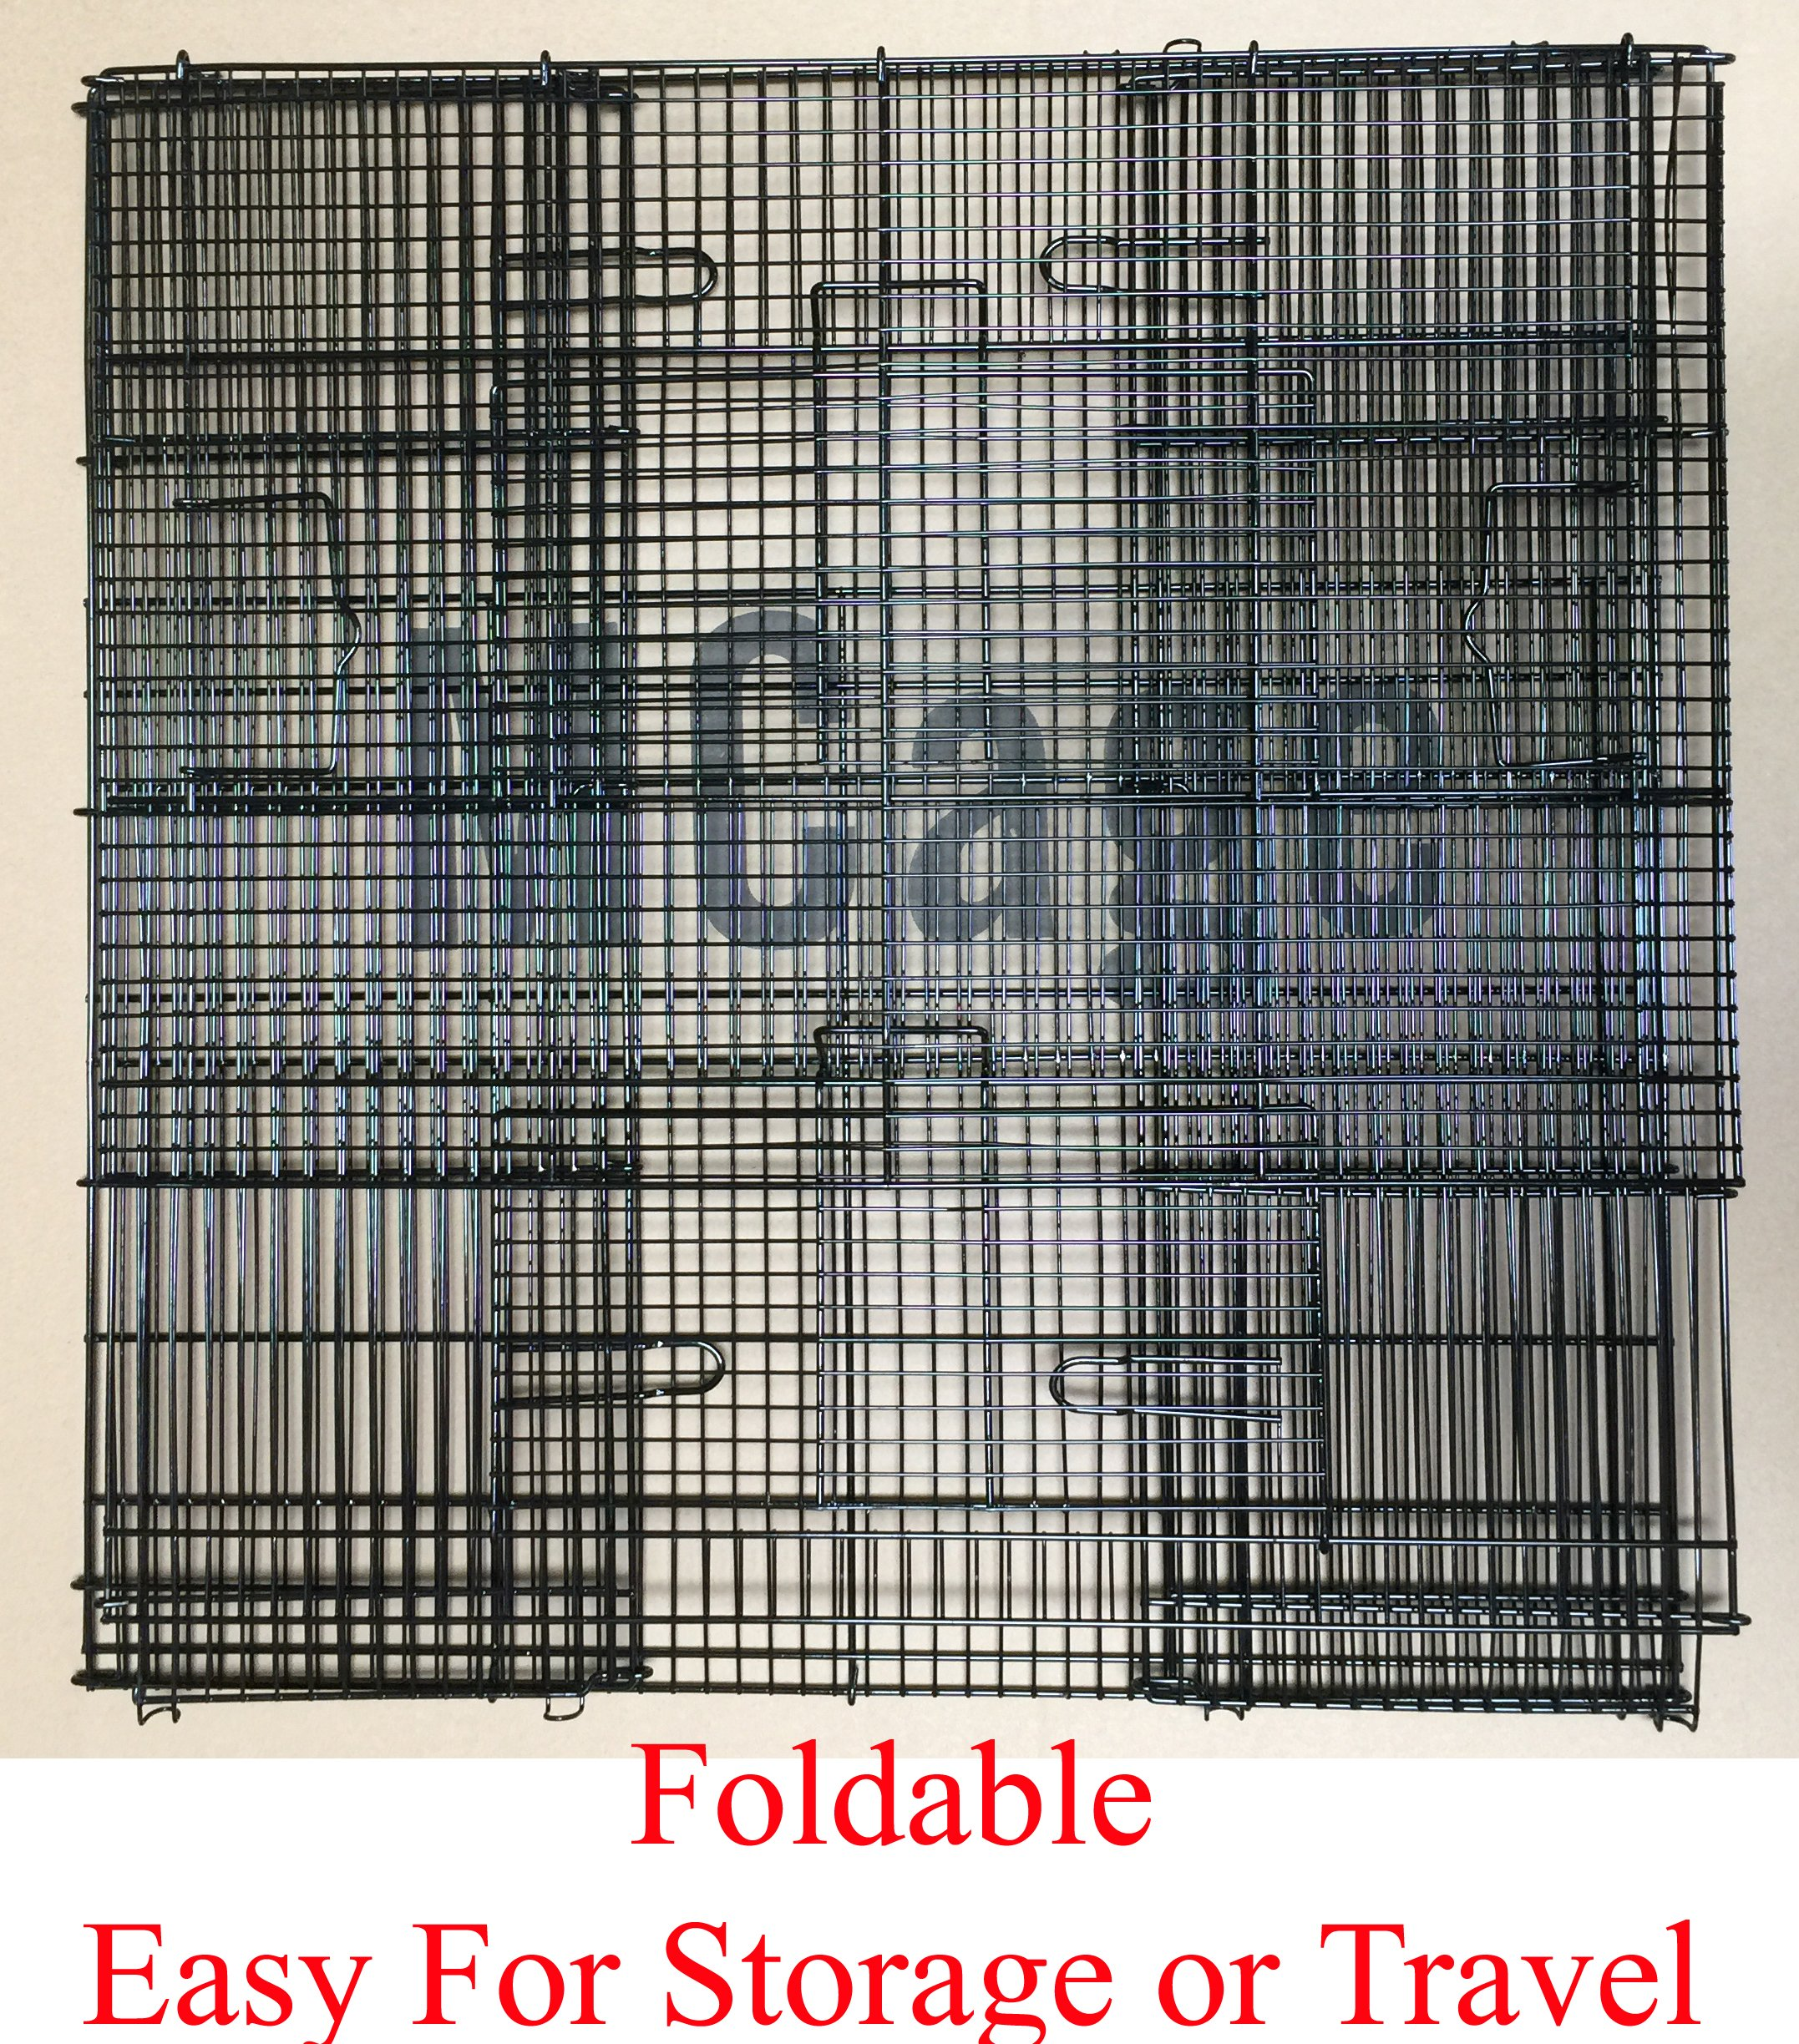 New Medium 3 Levels Ferret Chinchilla Sugar Glider Cage 24'' Length x 16'' Depth x 24'' Height by Mcage (Image #4)